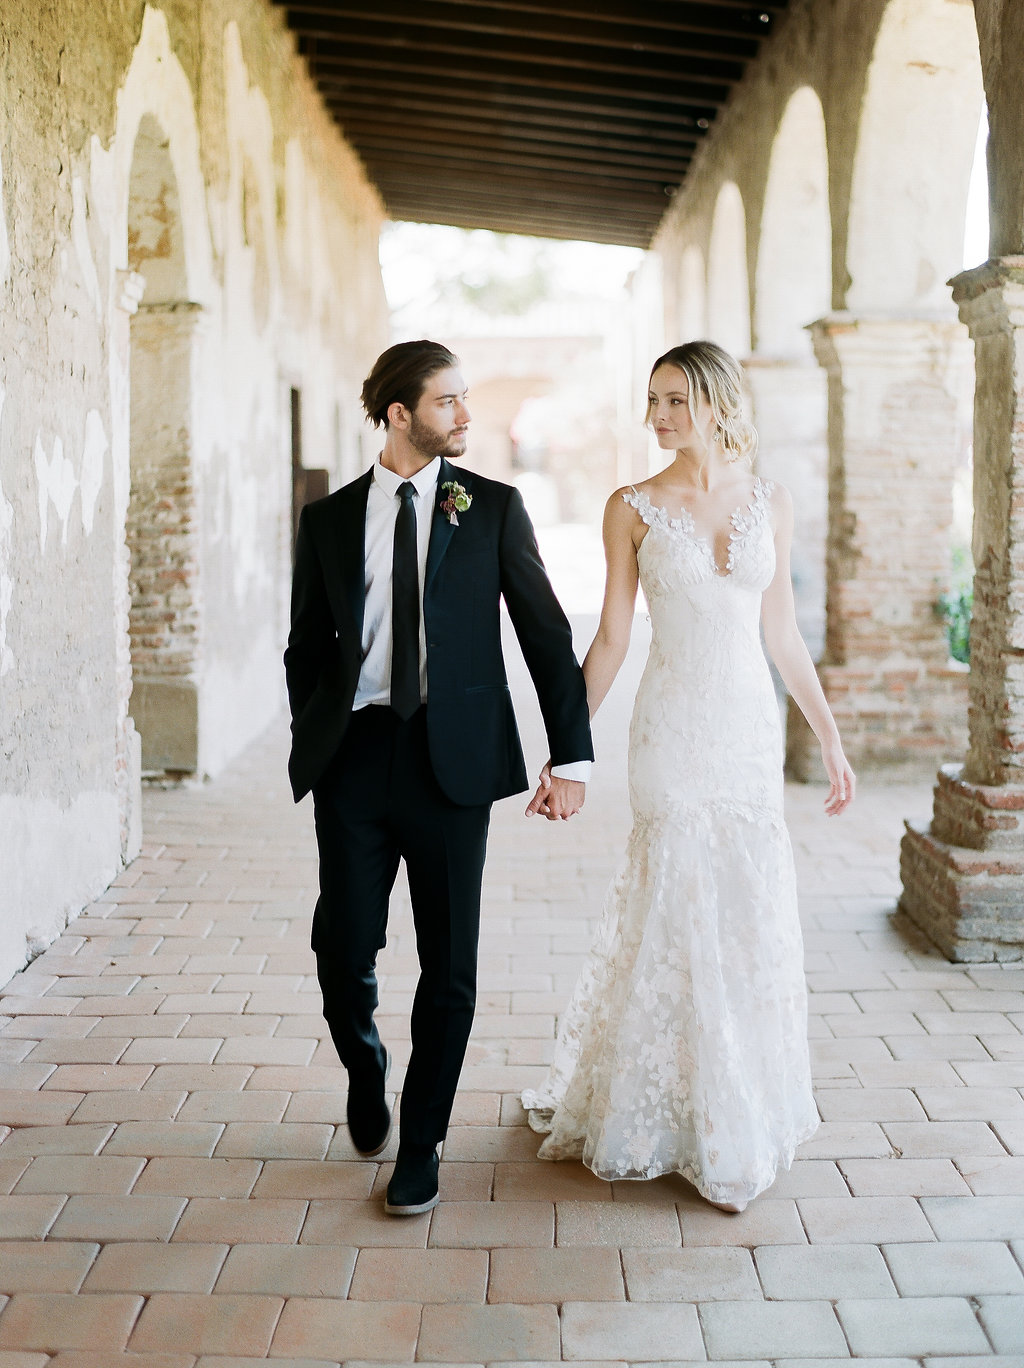 Spanish Mission Style Wedding Ideas Summer Flowers Finding Flora San Juan Capistrano European Venues California Claire Pettibone Wedding Dress